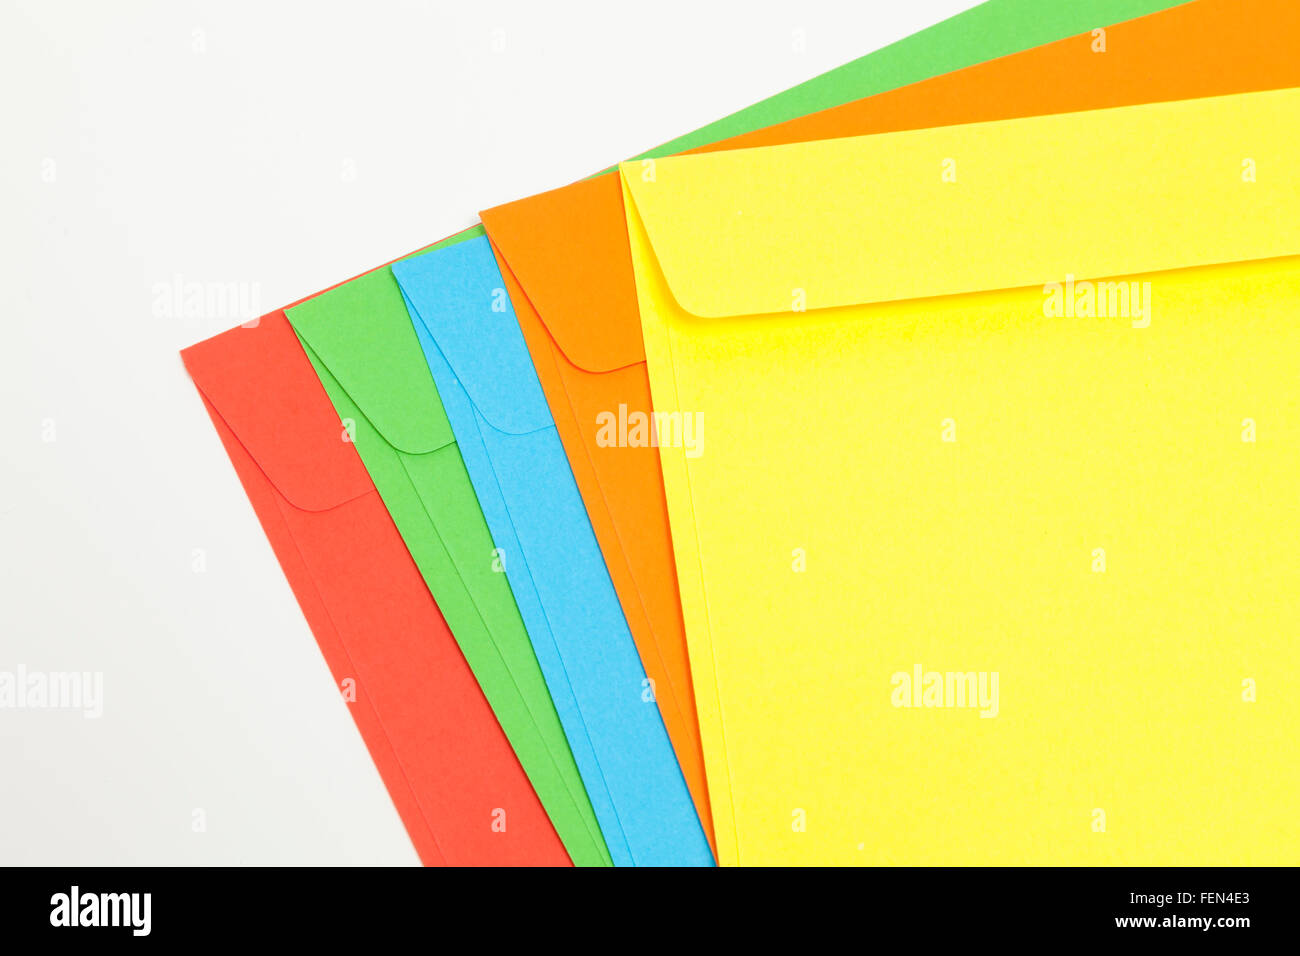 Colored envelopes - Stock Image